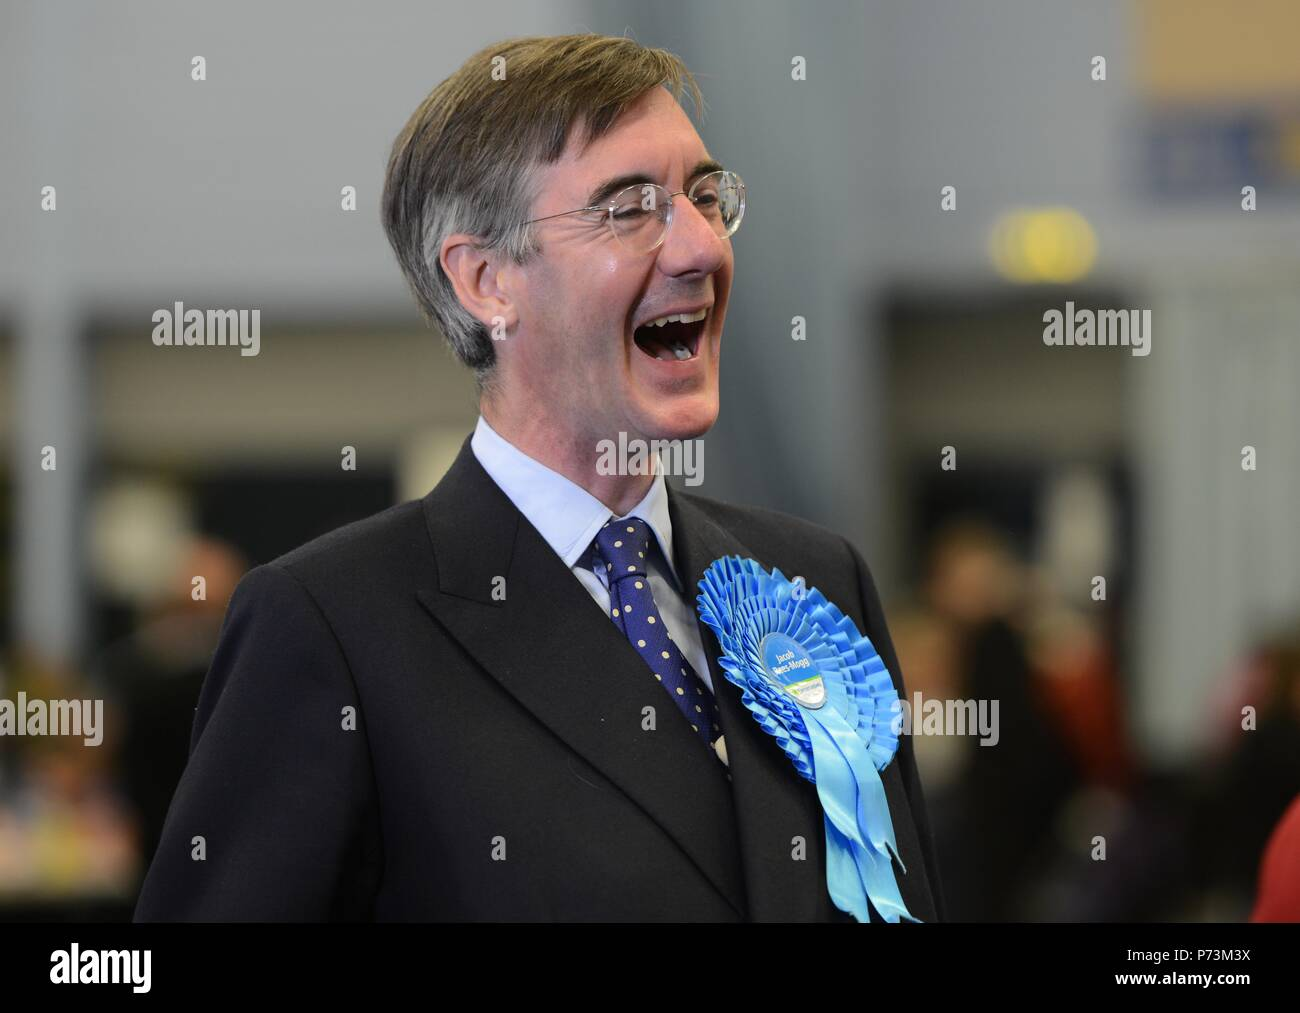 Election night with Jacob Rees Mogg standing for North East Somerset - Stock Image